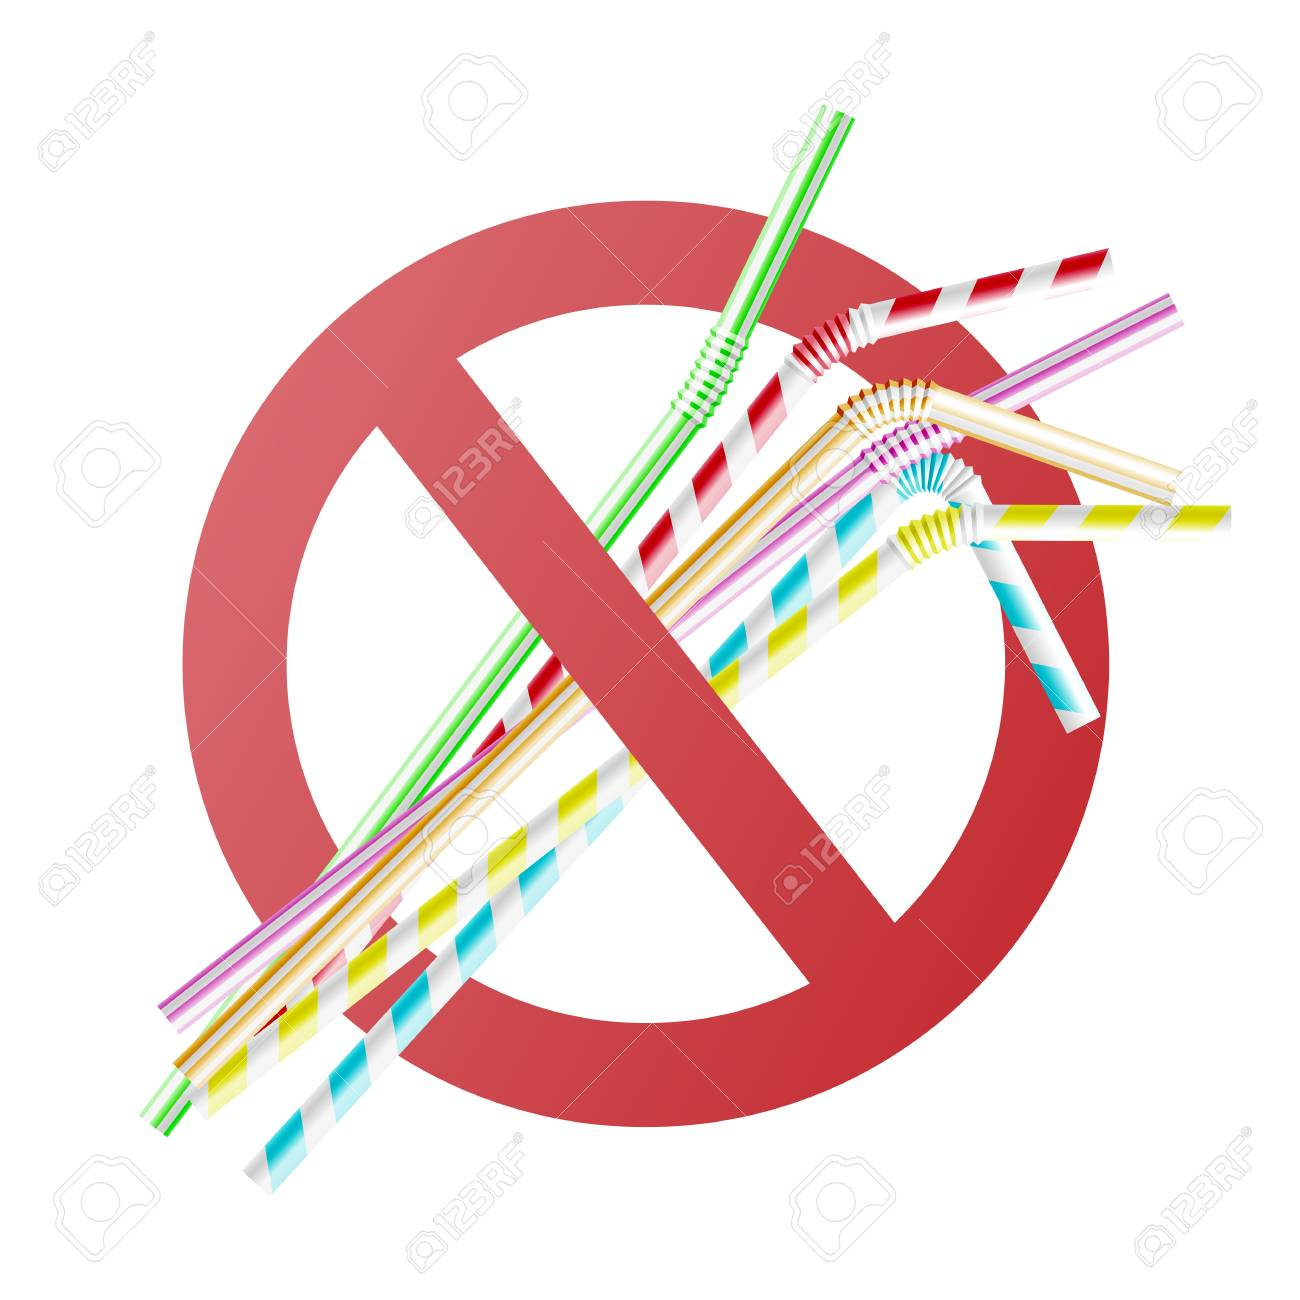 Vector no to plastic straws concept with colorful cocktail straws in red crossed circle. Environment pollustion prohibition, forbidden of disposable garbage cant be recycled. - 114033197